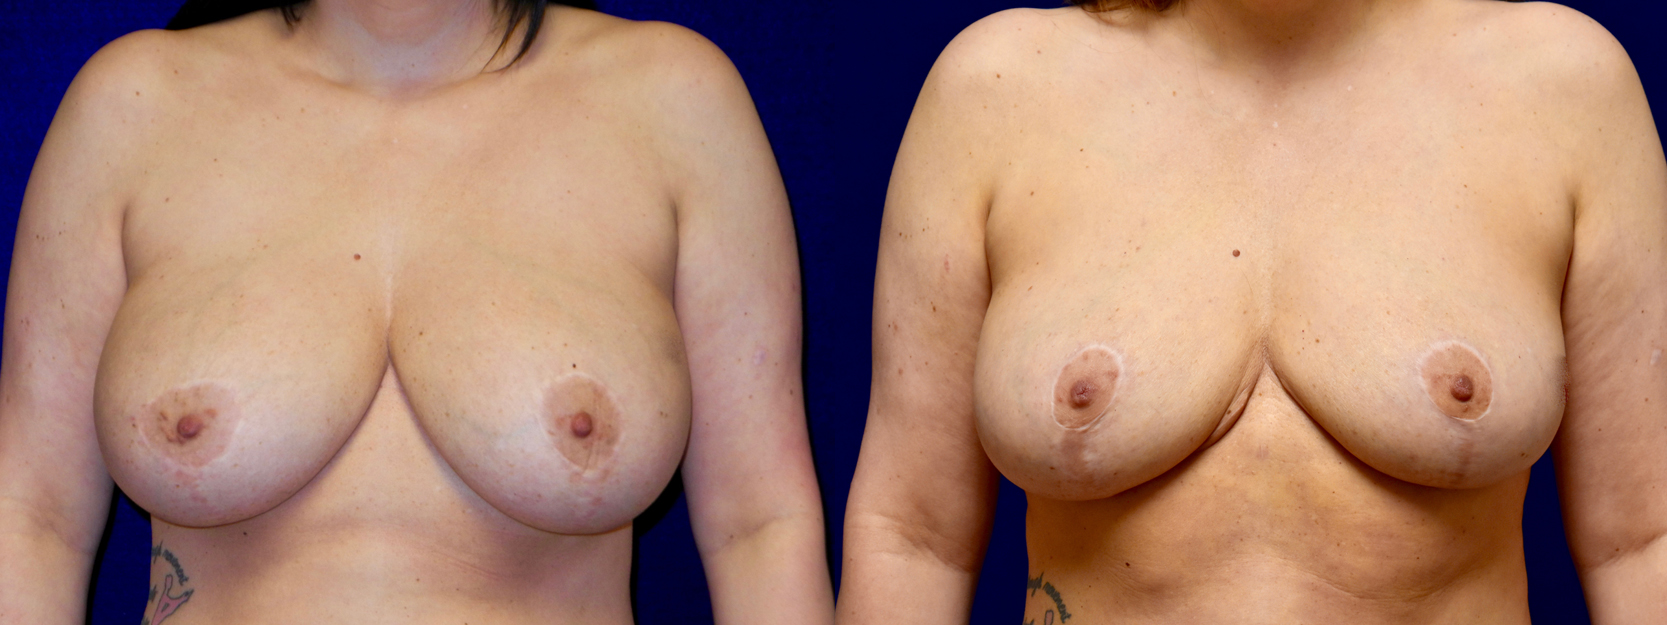 Frontal View - Breast Implant Removal with Reduction and Lift